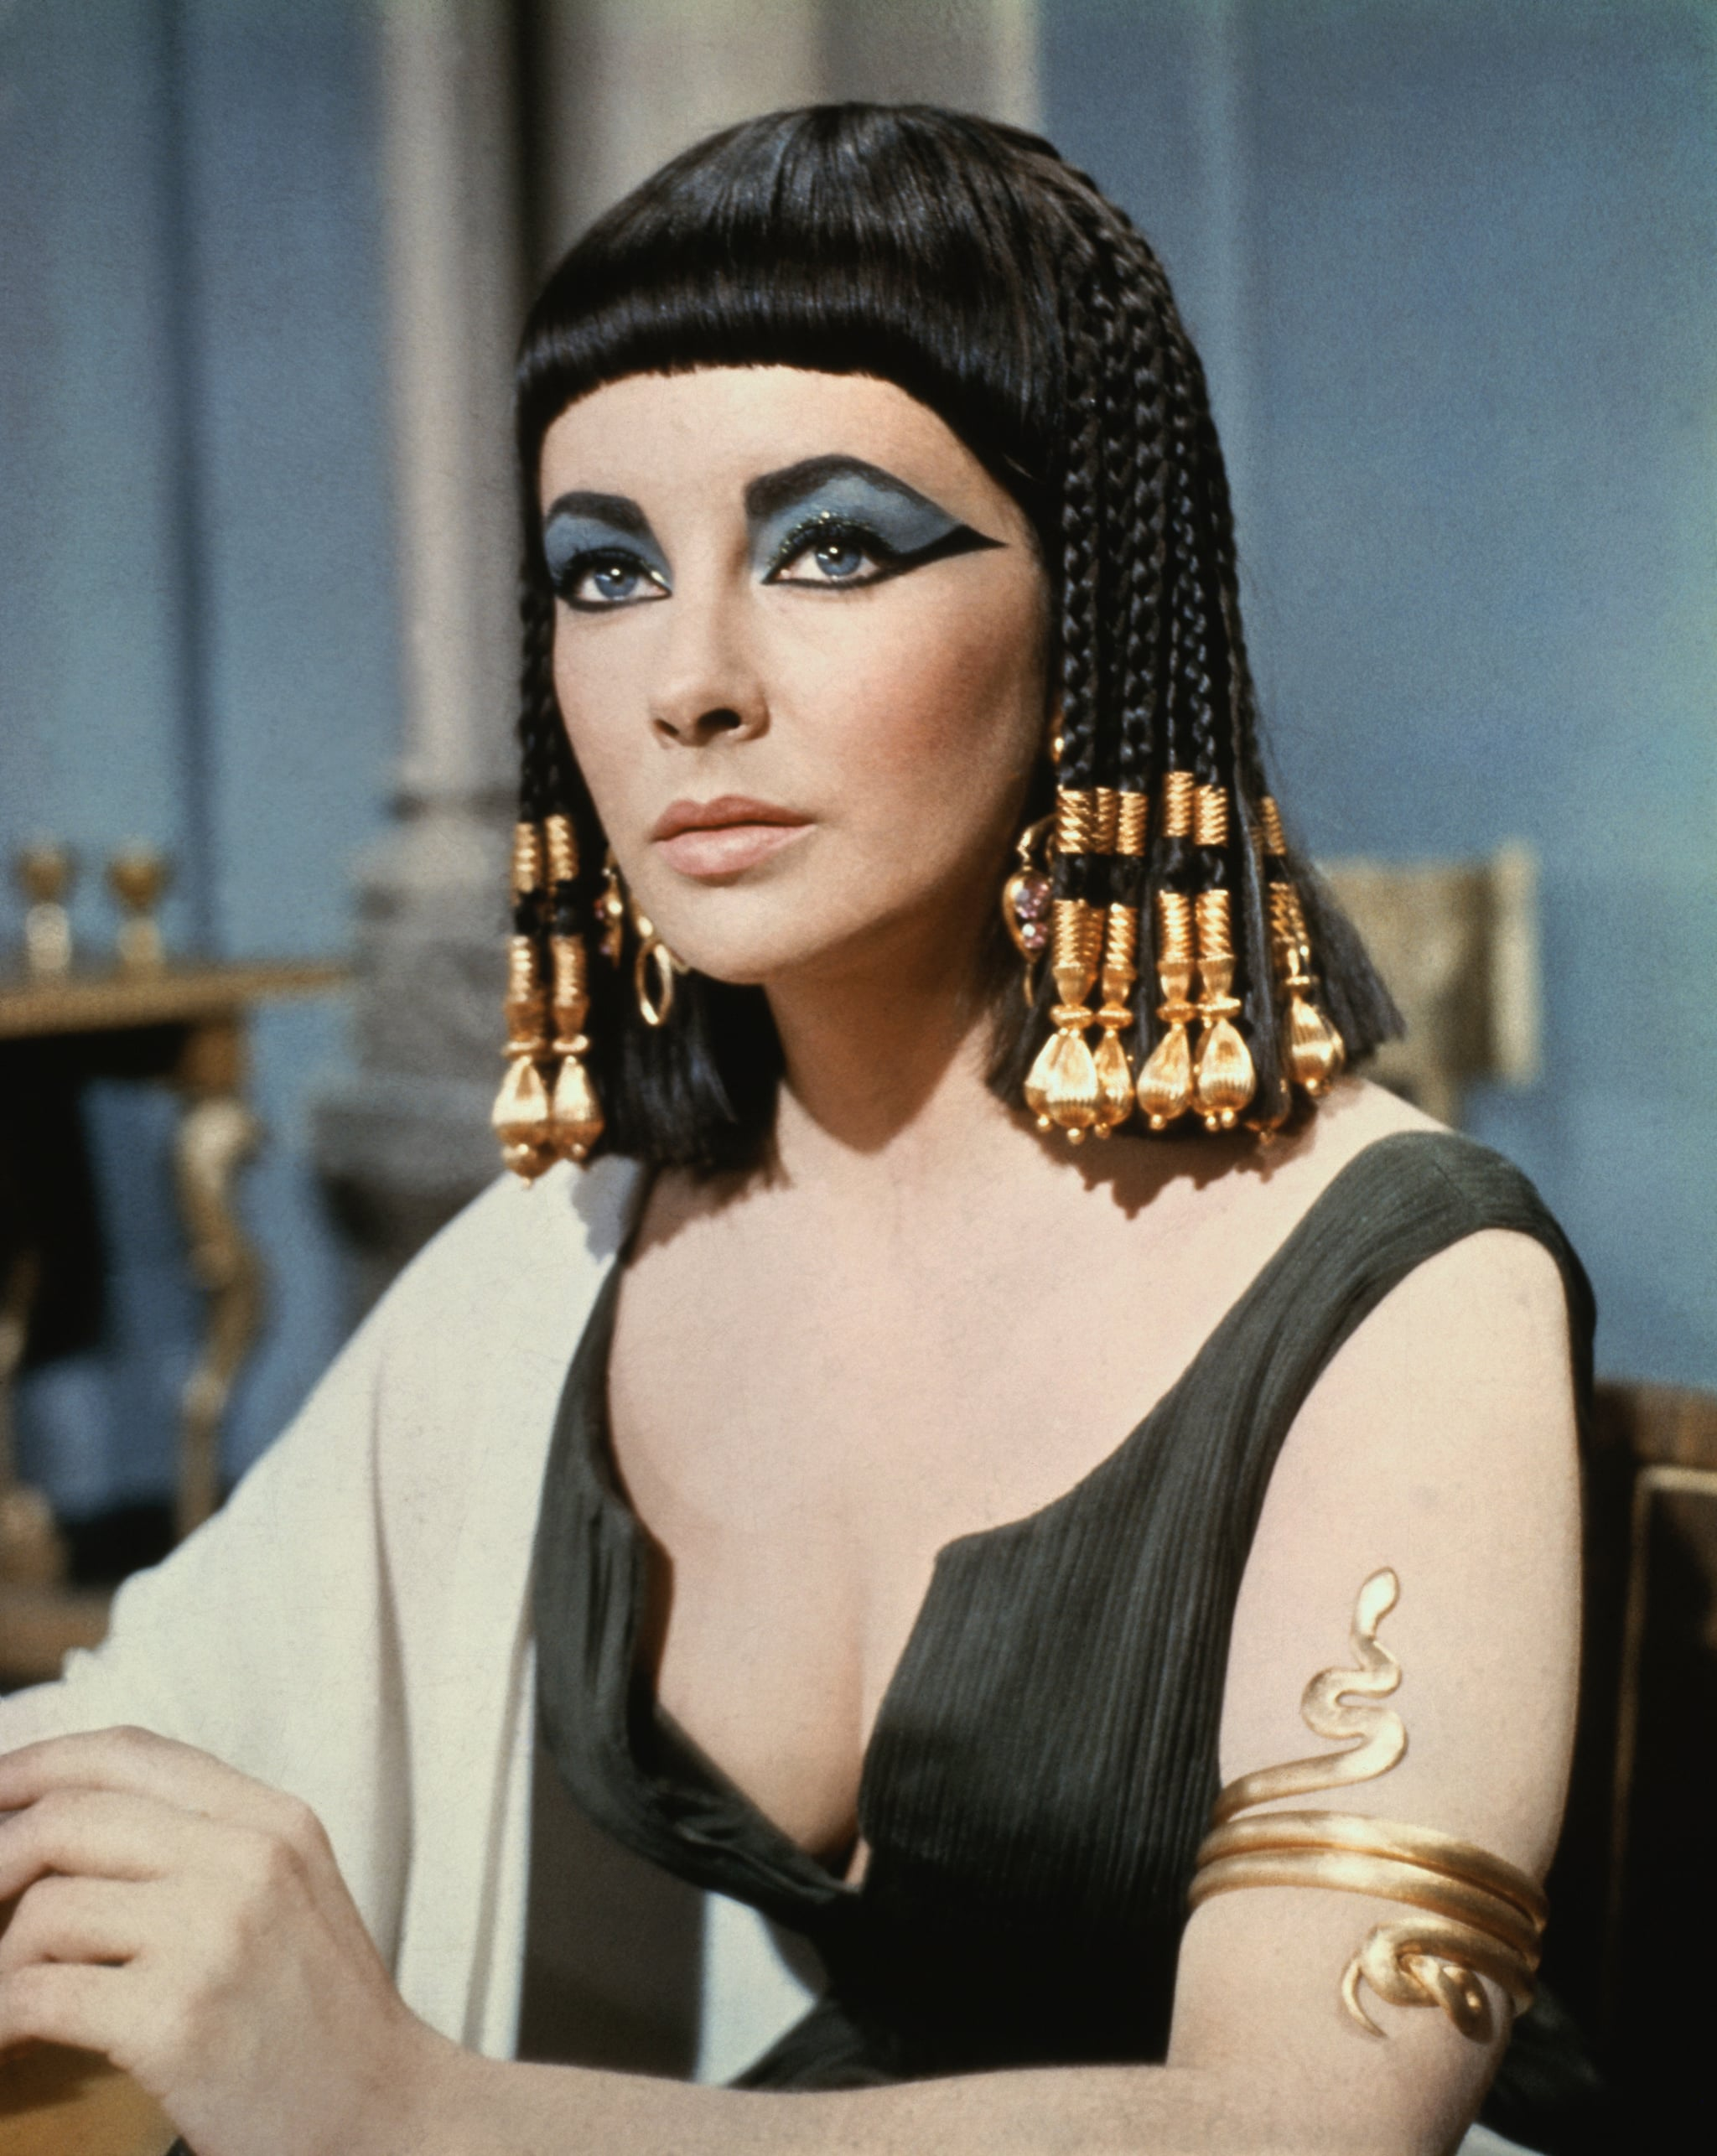 Tremendous Cleopatra 12 Powerful Hairstyles And The Women Who Rock Them Short Hairstyles For Black Women Fulllsitofus